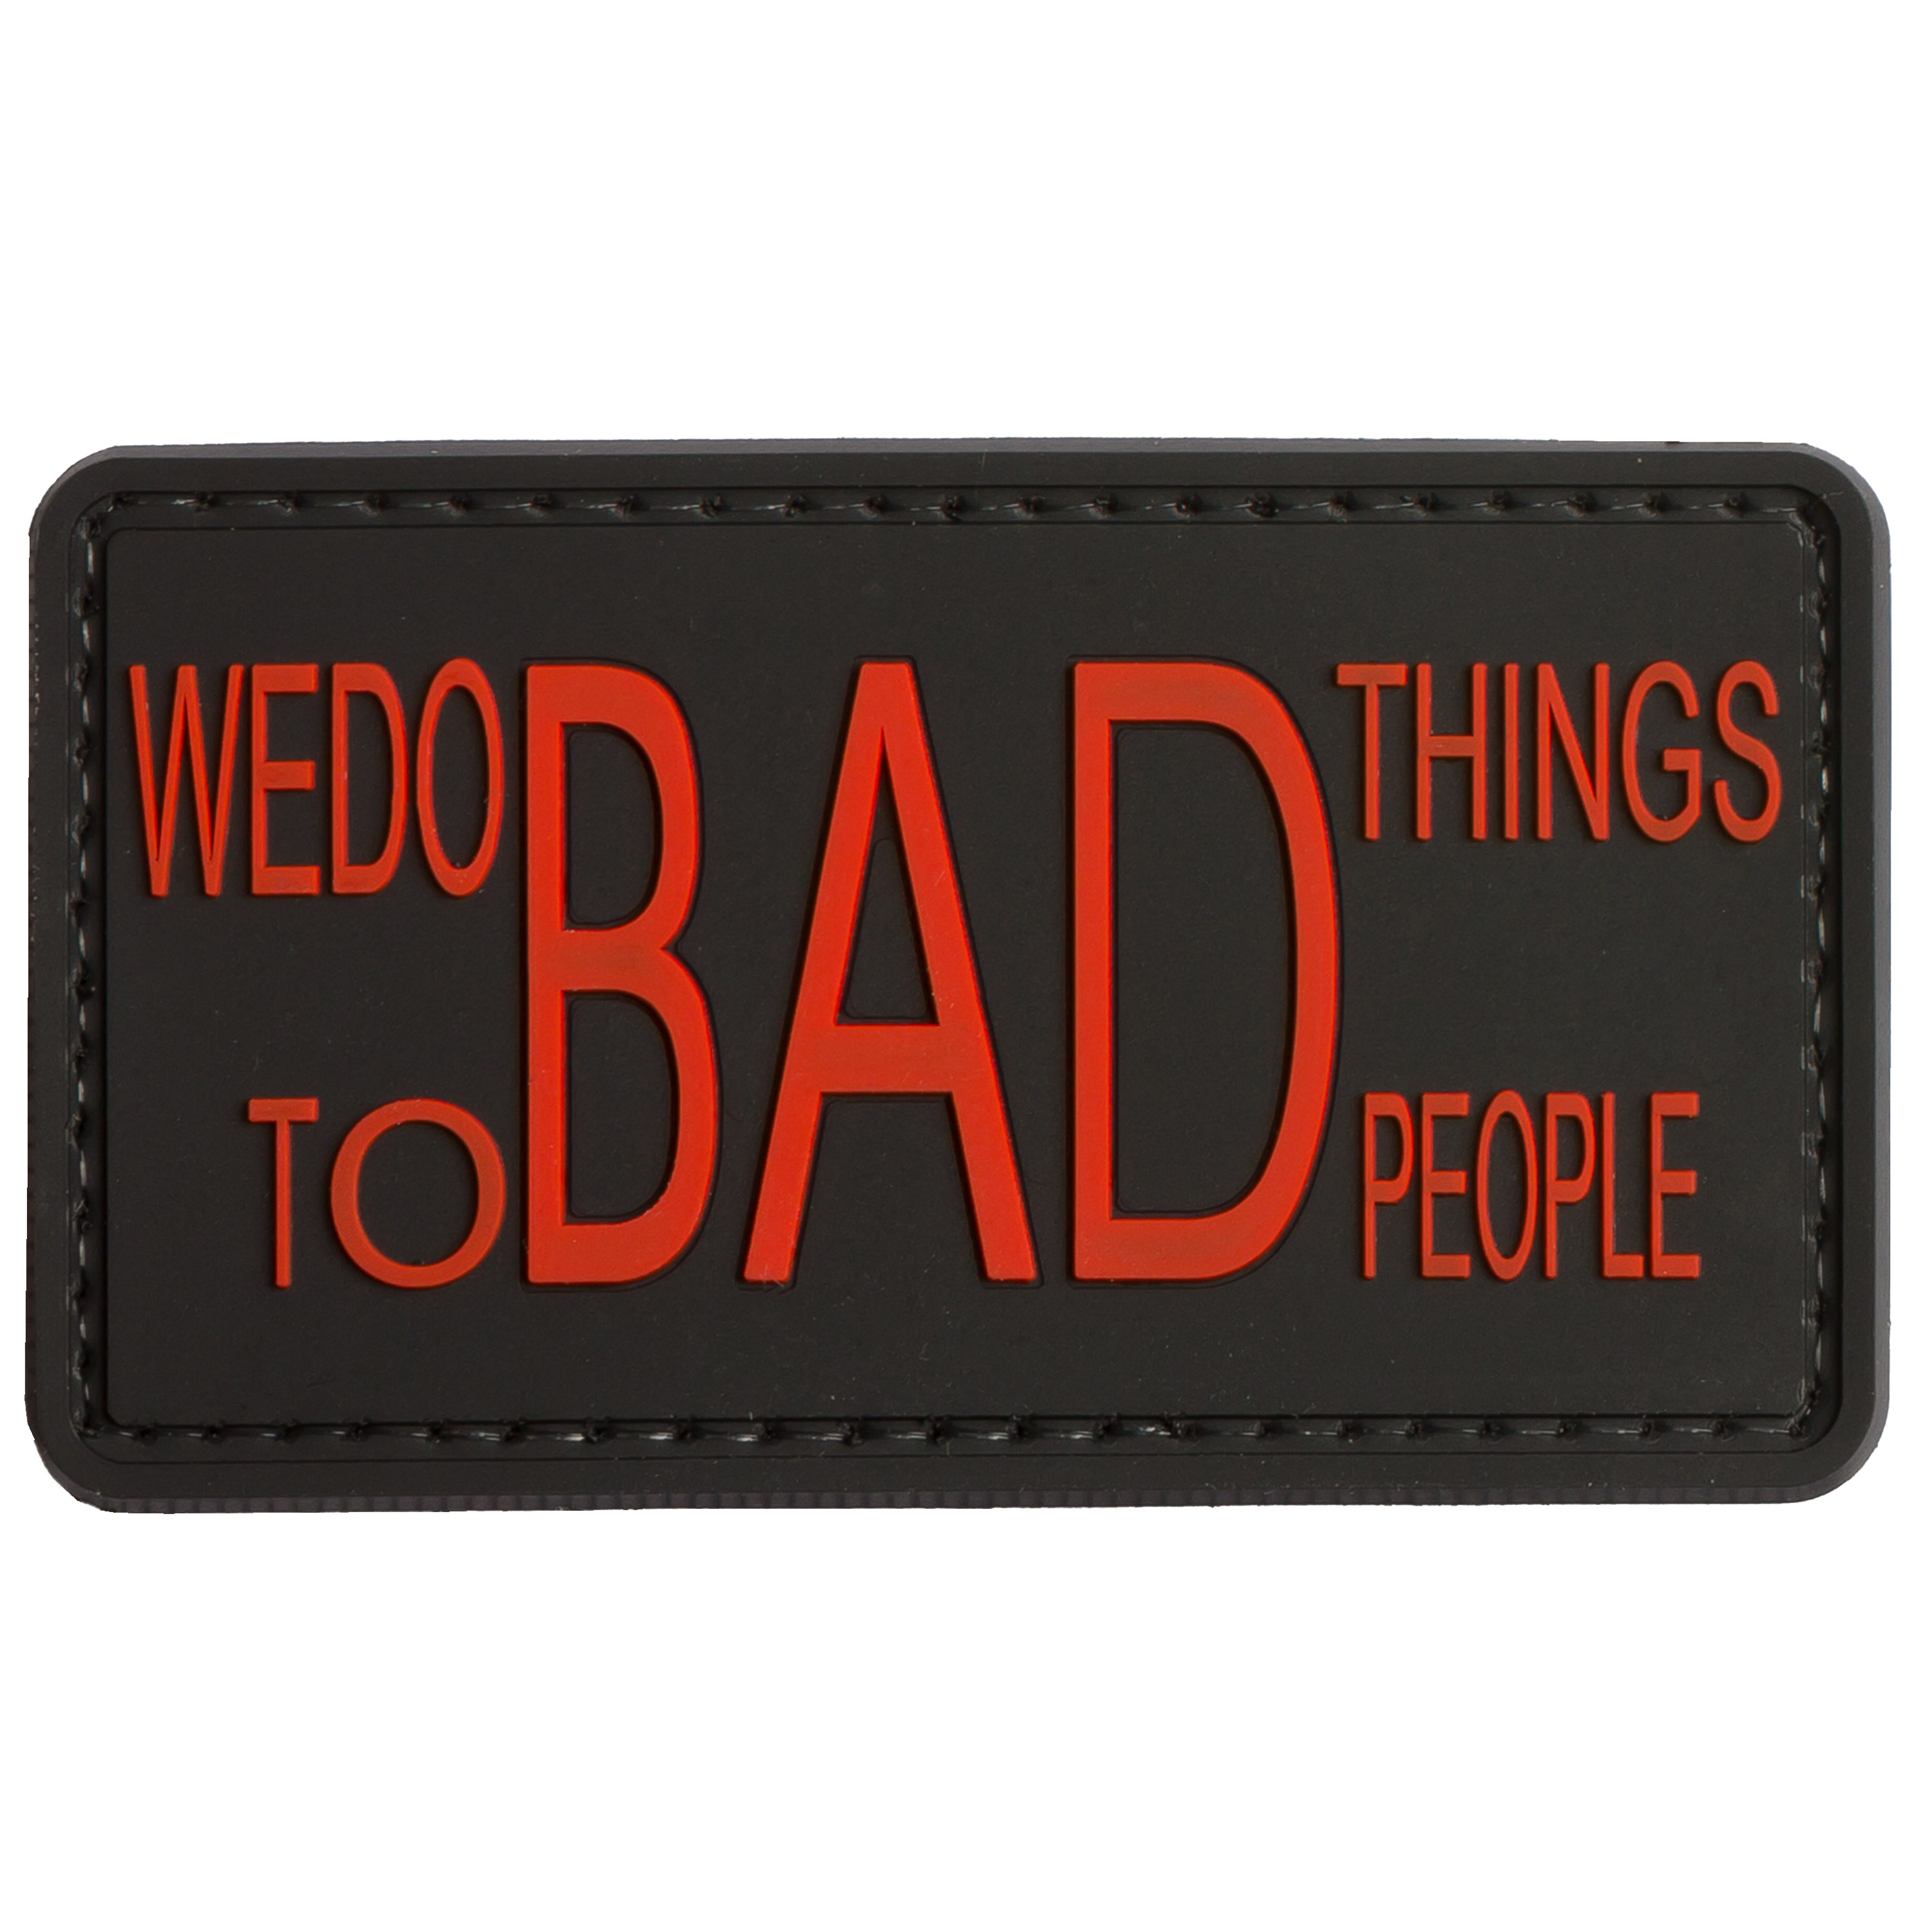 """Patch 3D TAP """"We do bad things to bad people"""" rosso/sfondo nero"""